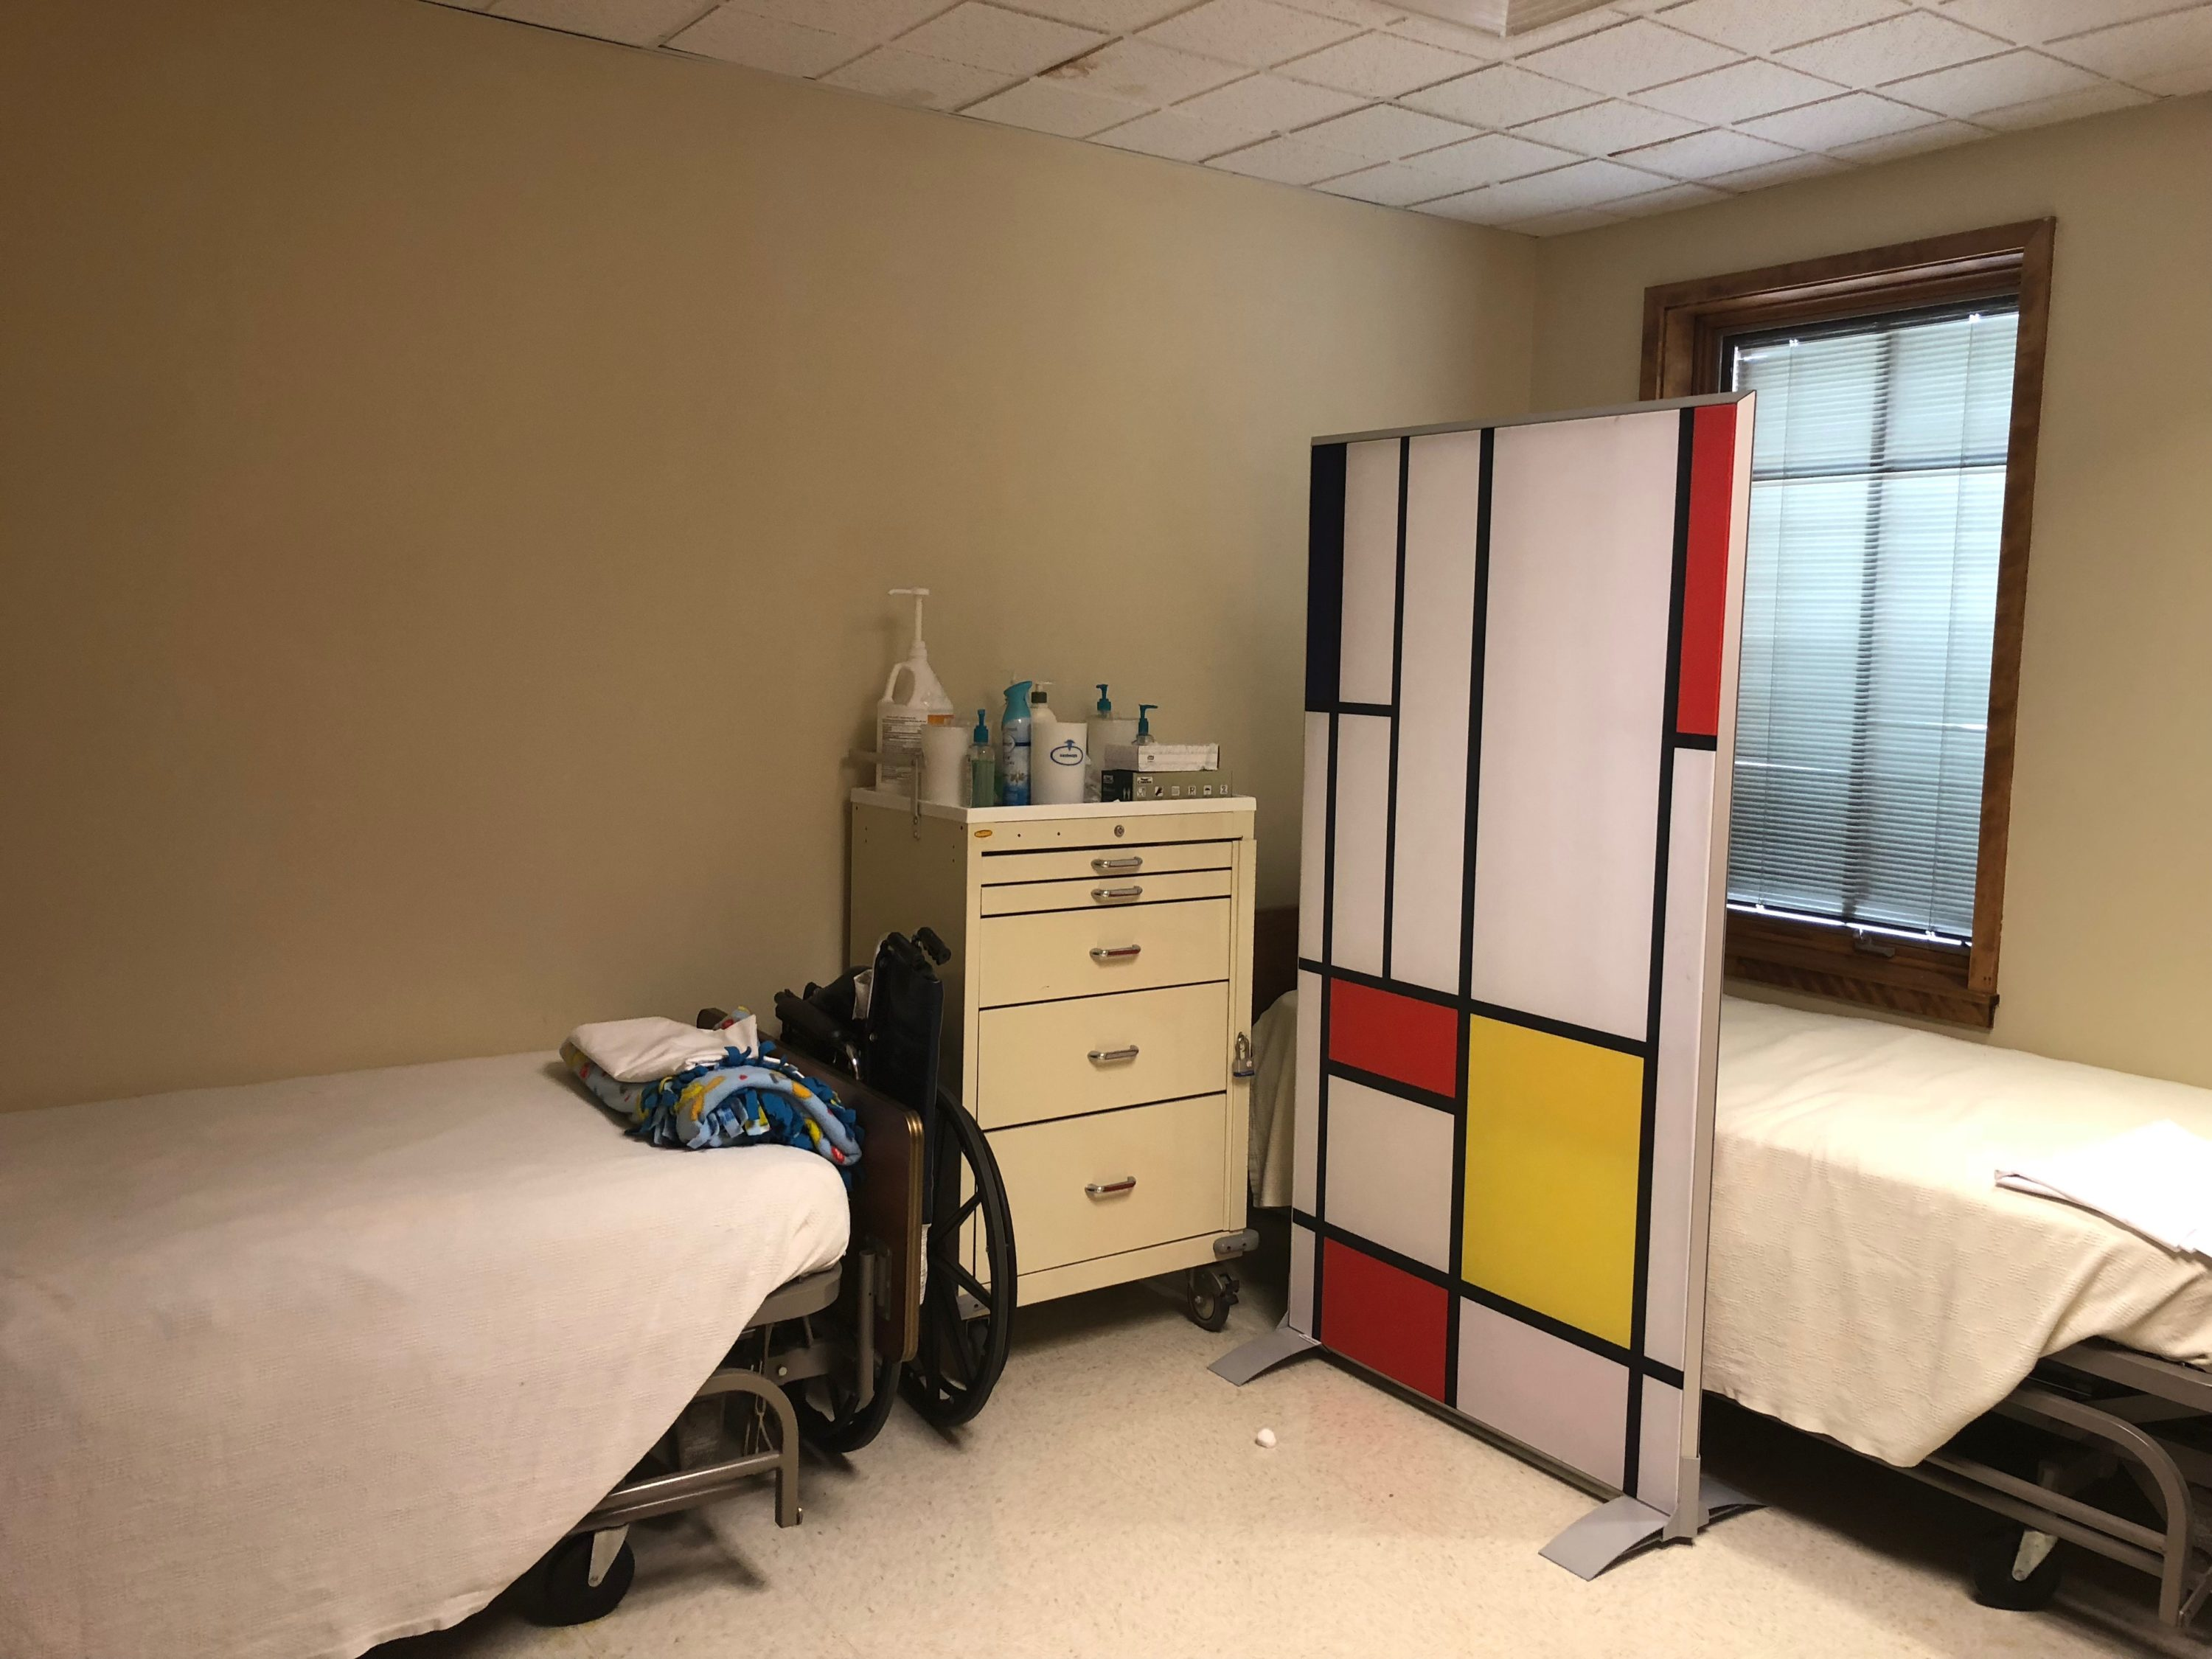 Health Center Sick Bay contains 2 medical beds on wheels with white sheets. A wheelchair is folded between the foot of one bed and a medical cart. Squares of white, red and yellow plexiglass bordered by navy blue stripes create a 5'x3' screen. The screen is on the side of the second bed.